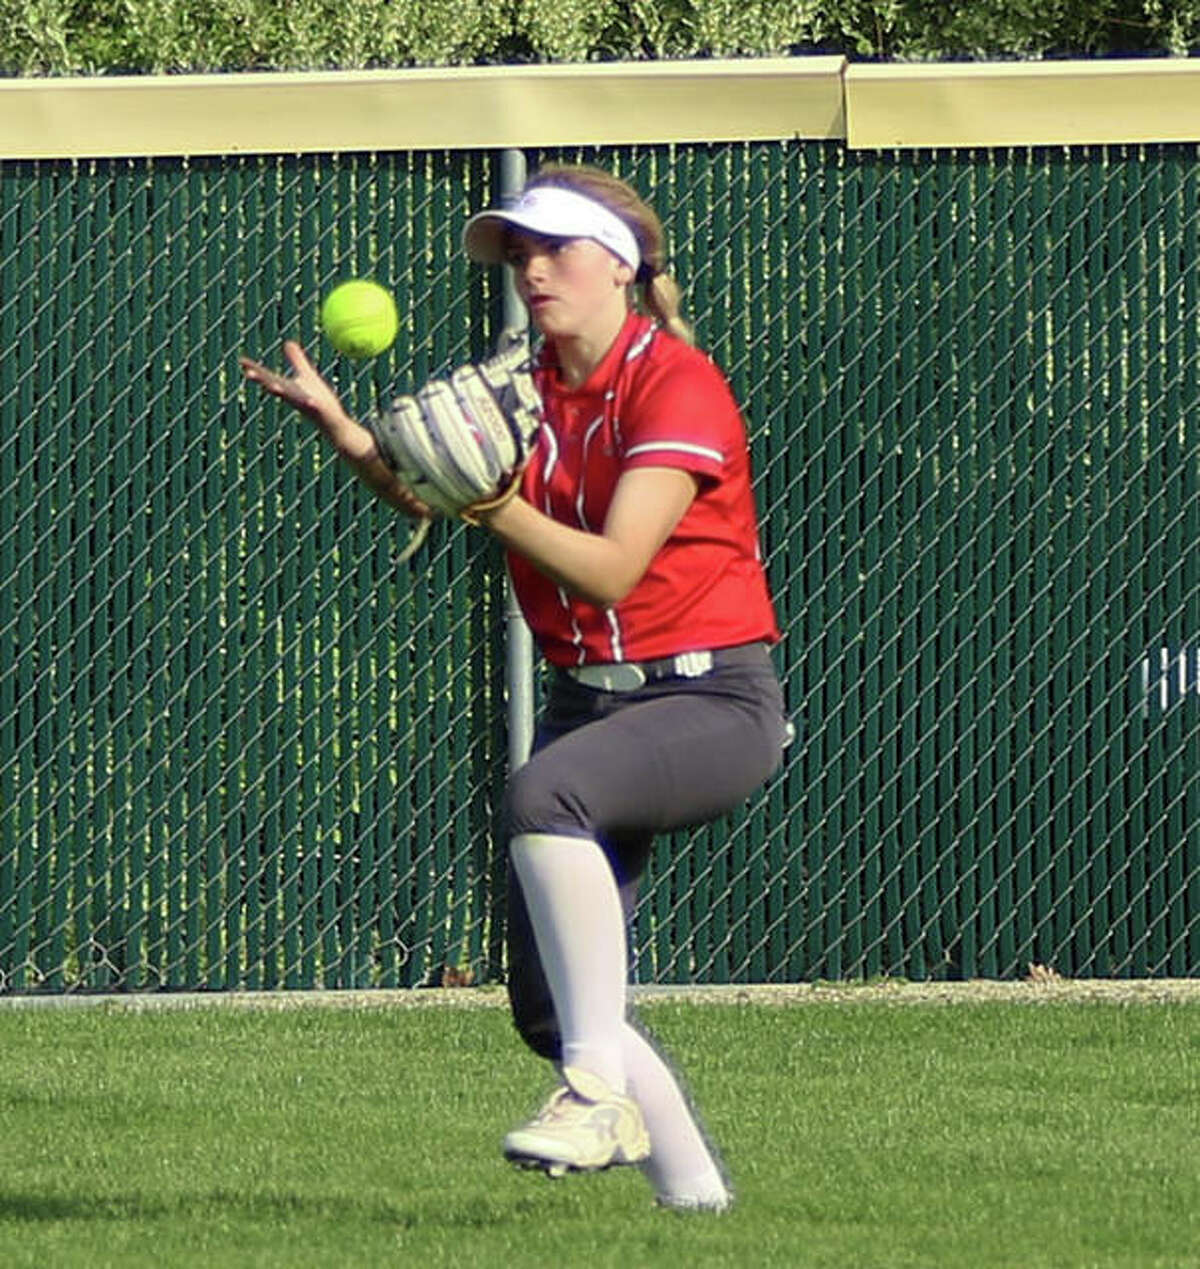 Alton right fielder Lauren O'Neill bobbles a fly ball, but makes the catch against Triad on Monday at Alton High in Godfrey.